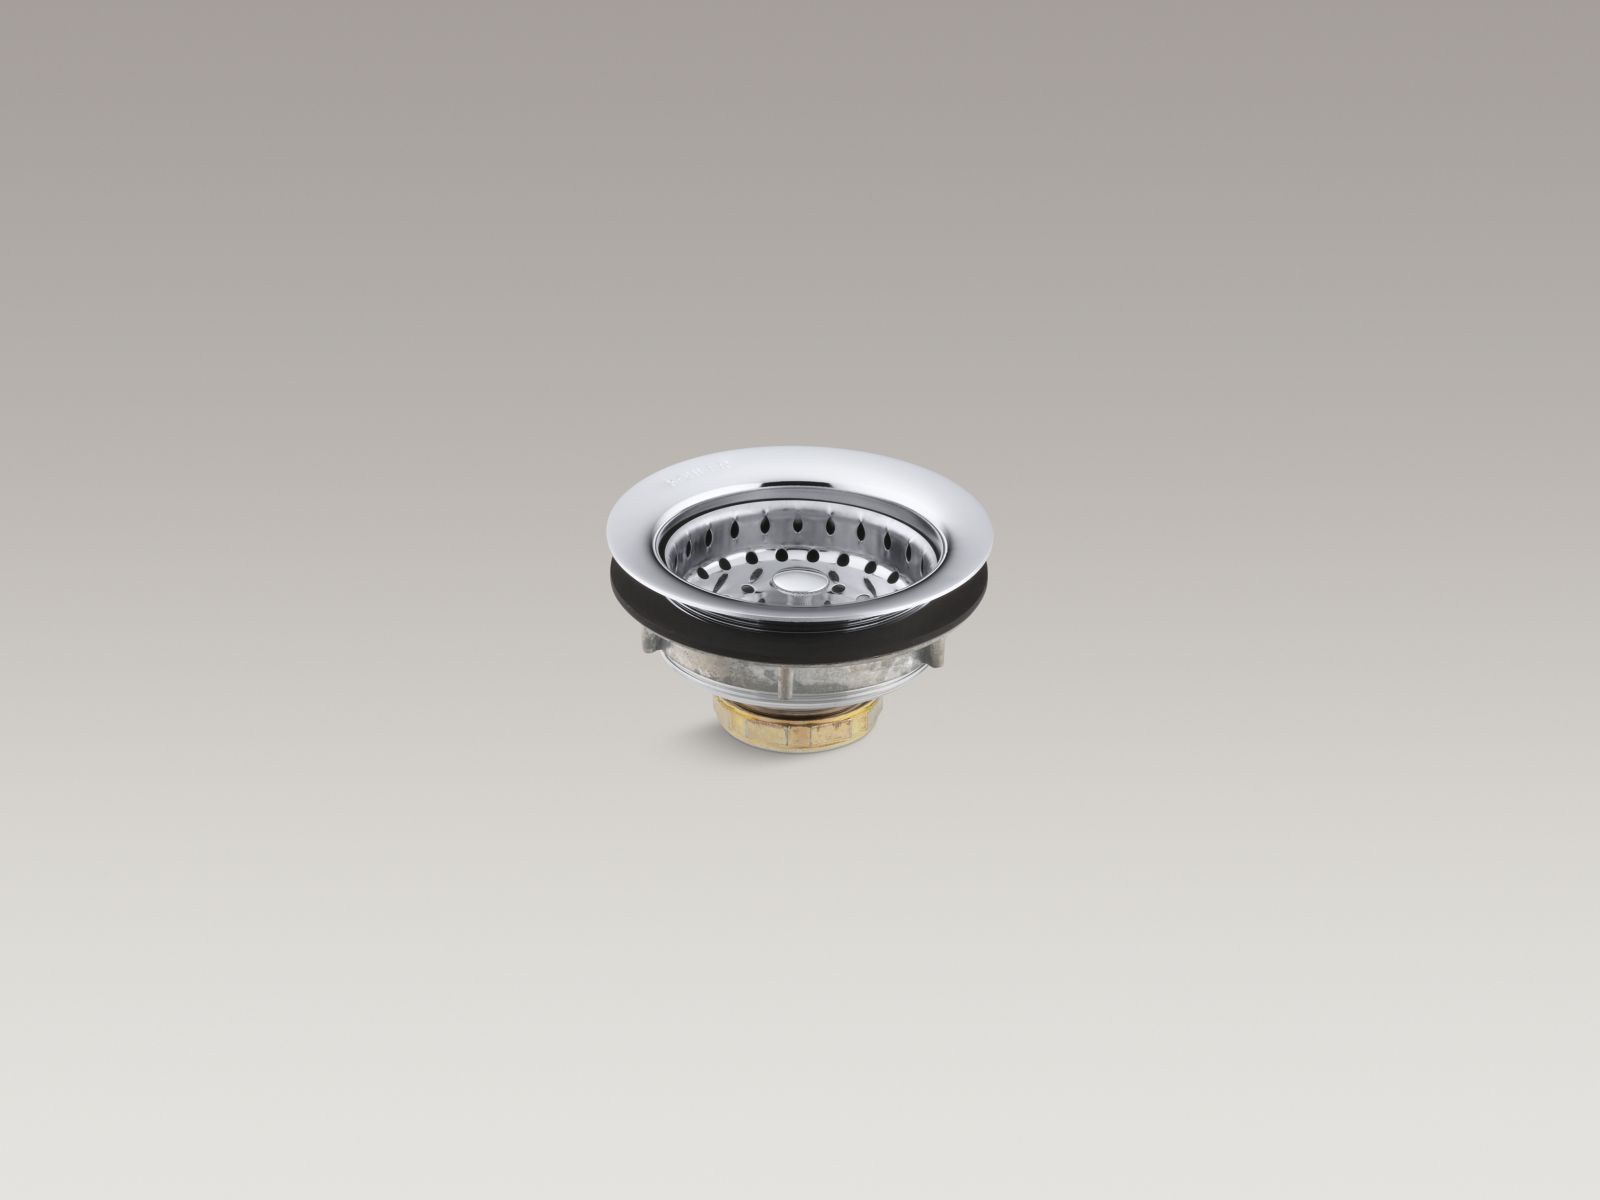 Kohler K-8814-CP Sink Strainer without Tailpiece, Polished Chrome